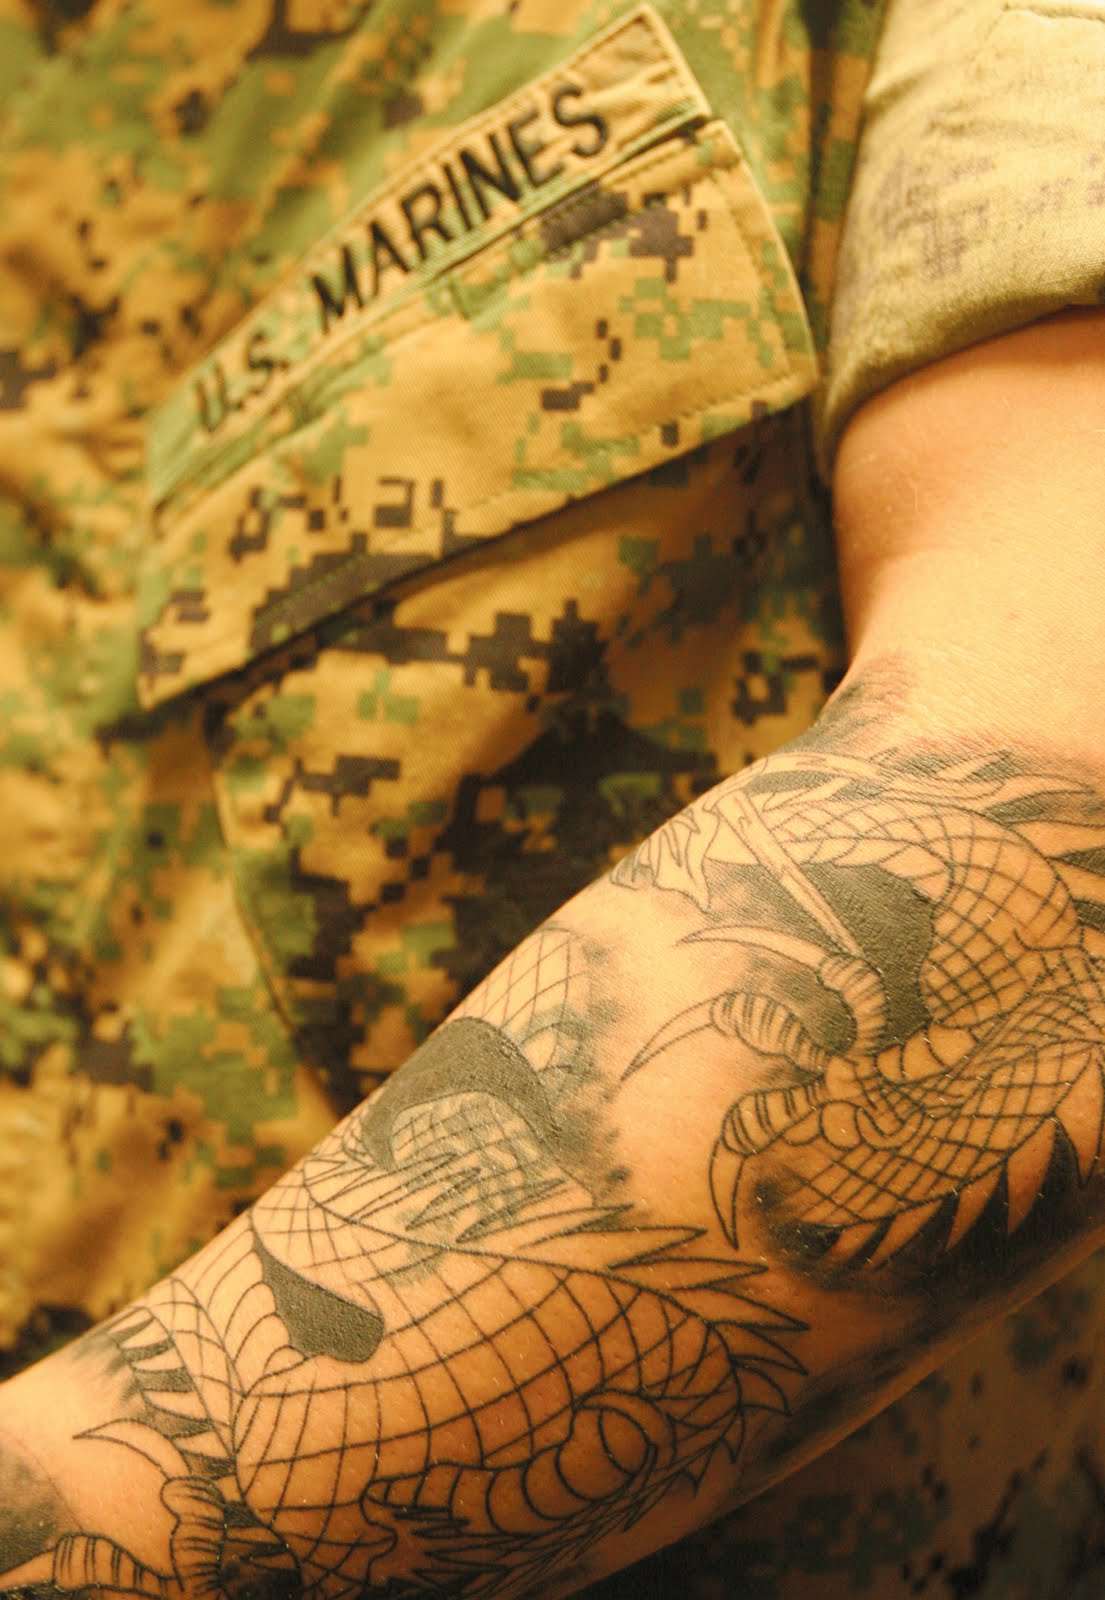 Usmc tattoo policy change 2014